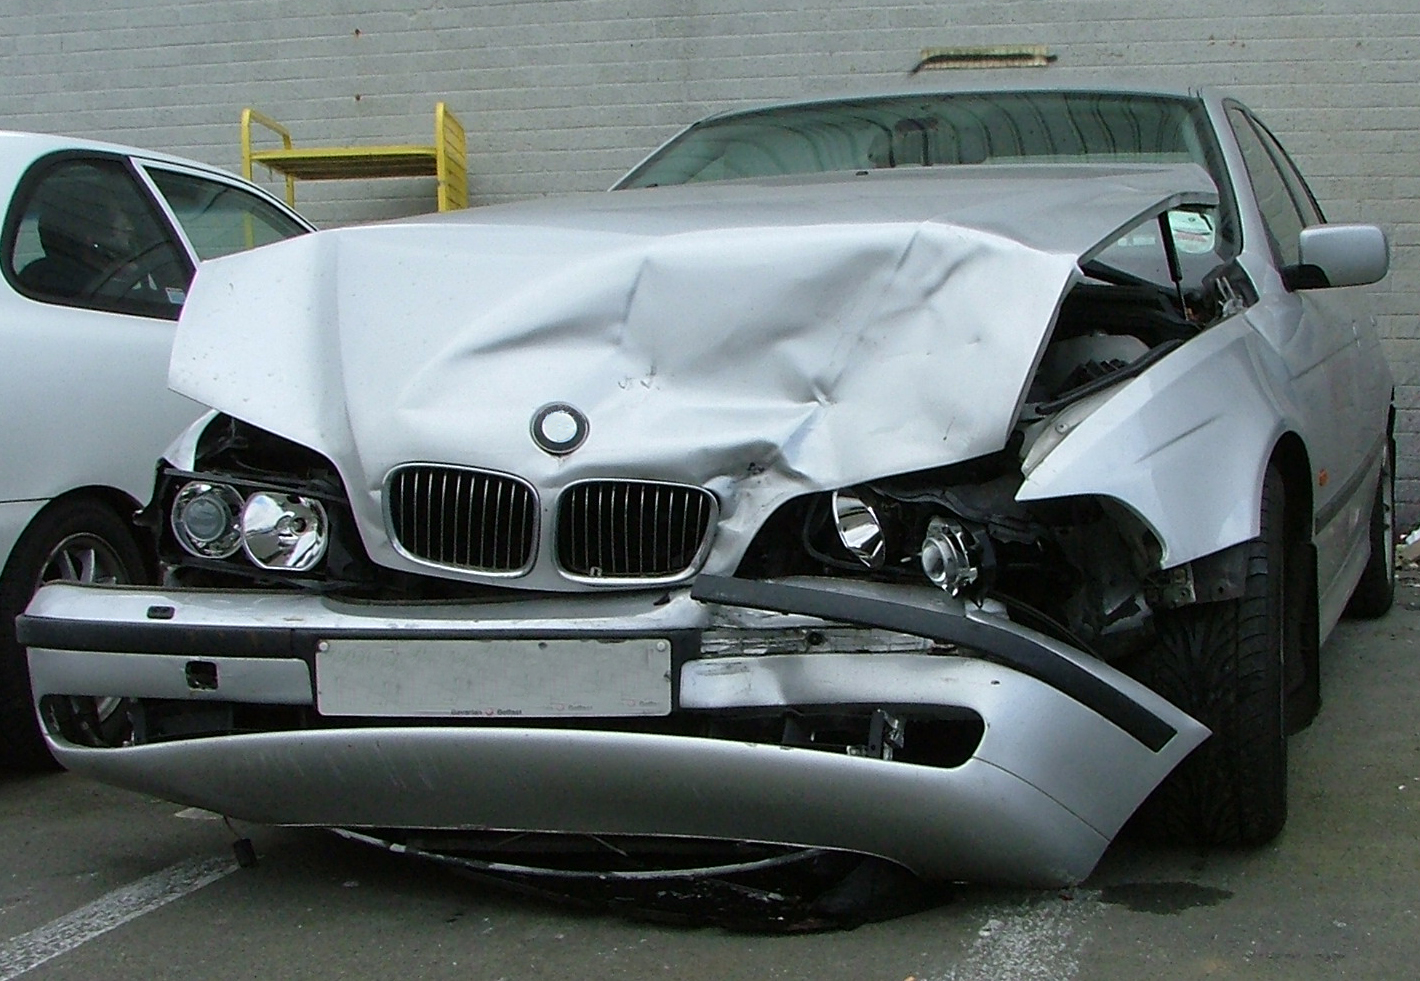 NYC Auto Salvage Is A Junk Car Removal Service, Used Auto Parts, Windsields And Auto Glass Replacement Service